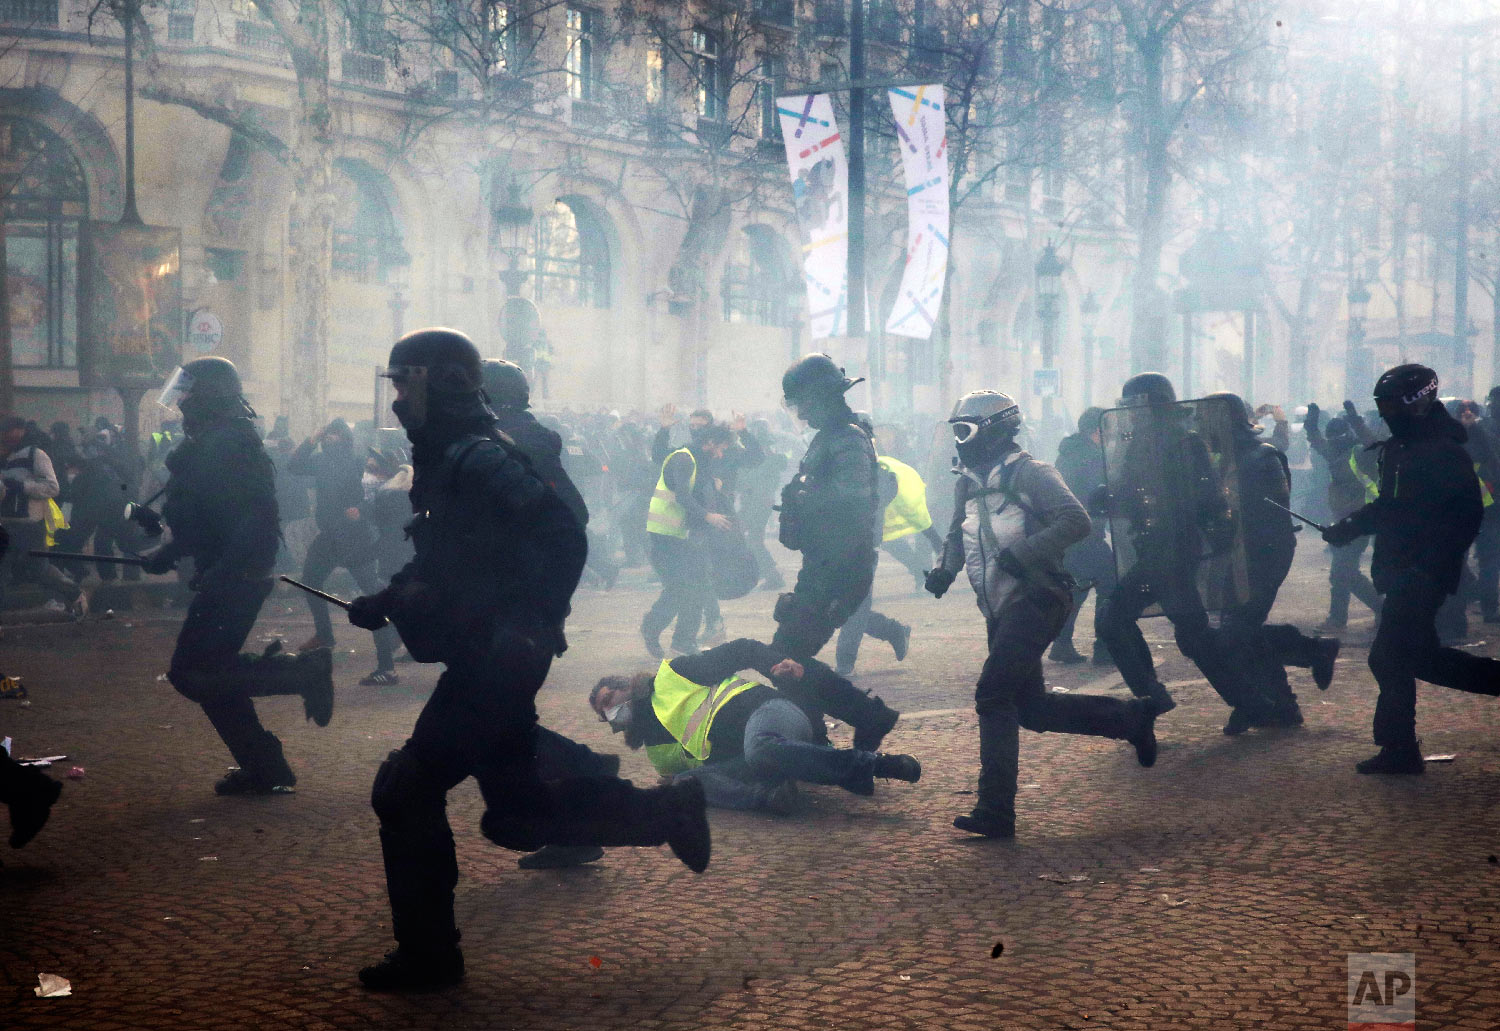 Riot police officers charge as a yellow vests demonstrator falls Saturday, March 16, 2019 in Paris. (AP Photo/Christophe Ena)